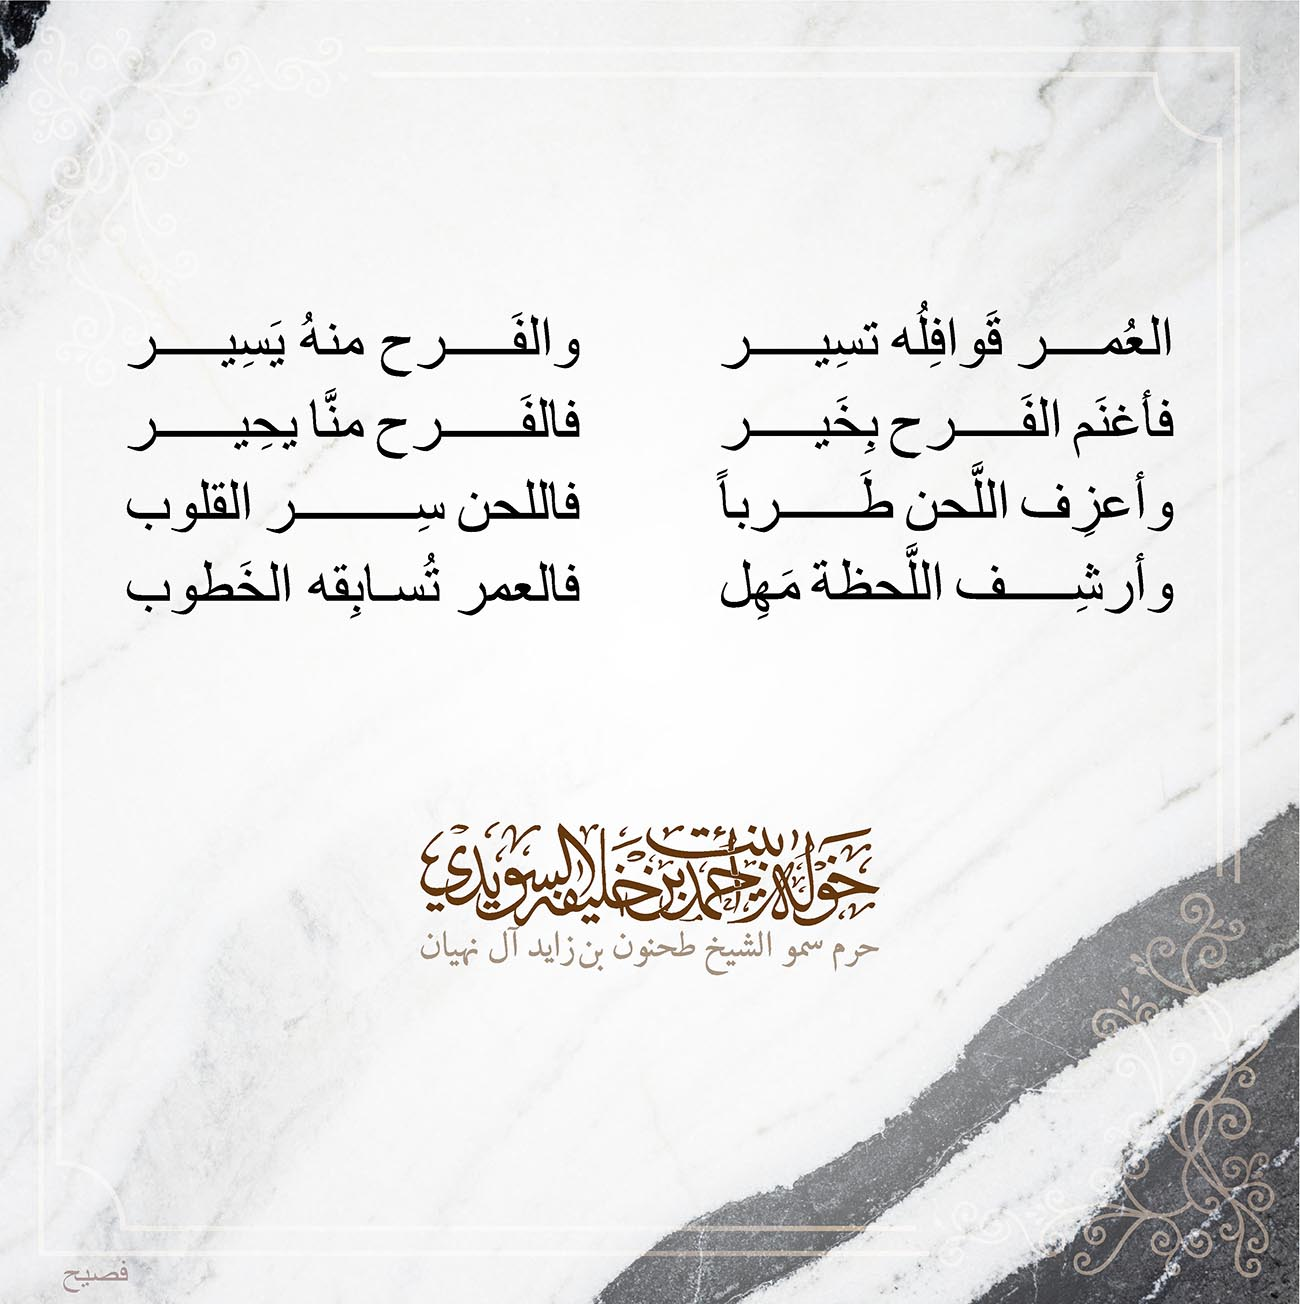 العُمر قَوافِلُه تسِير         والفَرح منهُ يَسِير